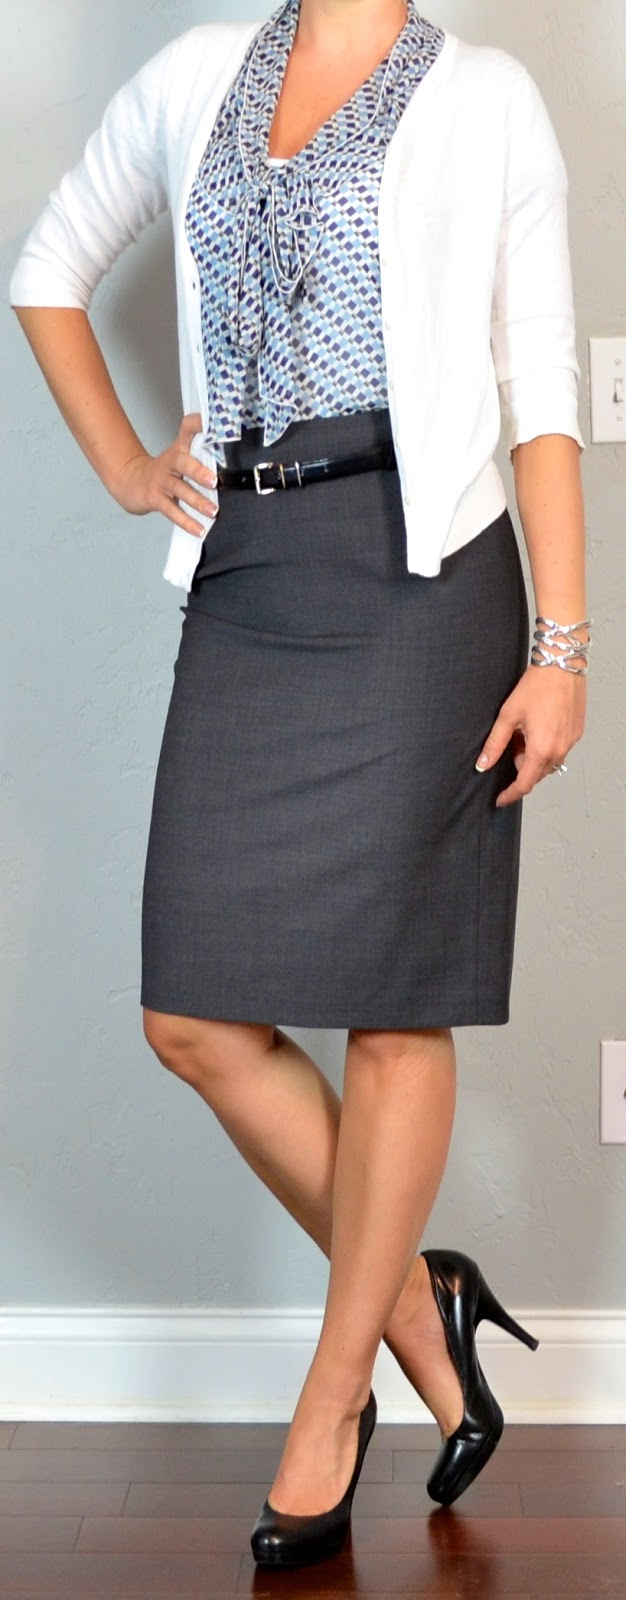 Outfit Post Grey Pencil Skirt Blue Pattern Tie-neck Blouse White Cardigan Black Pumps